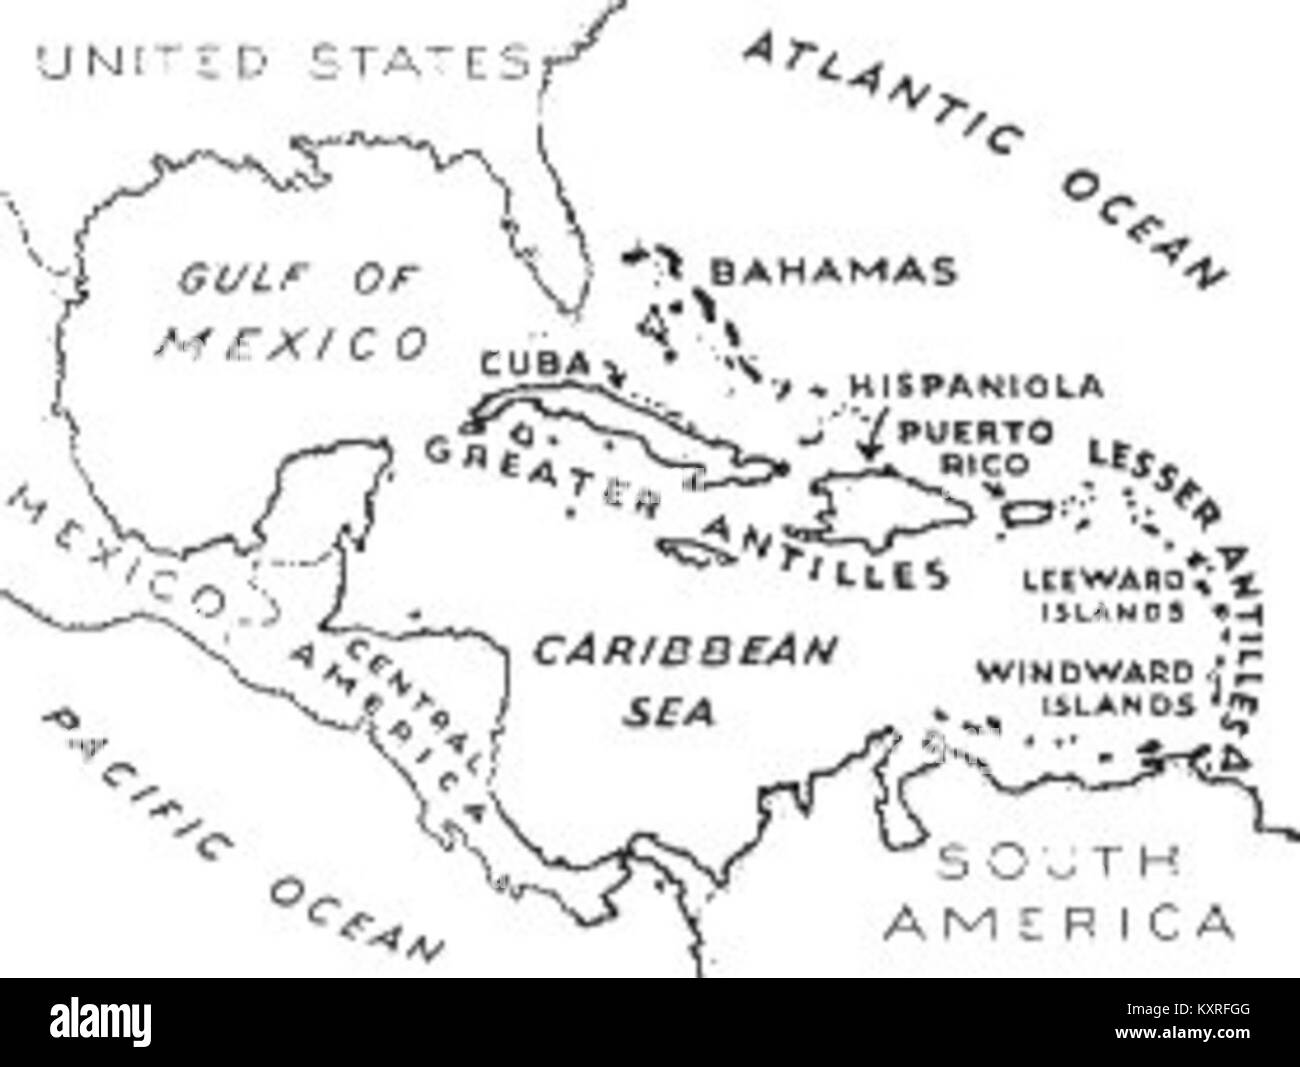 Black And White Map Of The Caribbean Caribbean Map Black and White Stock Photos & Images   Alamy